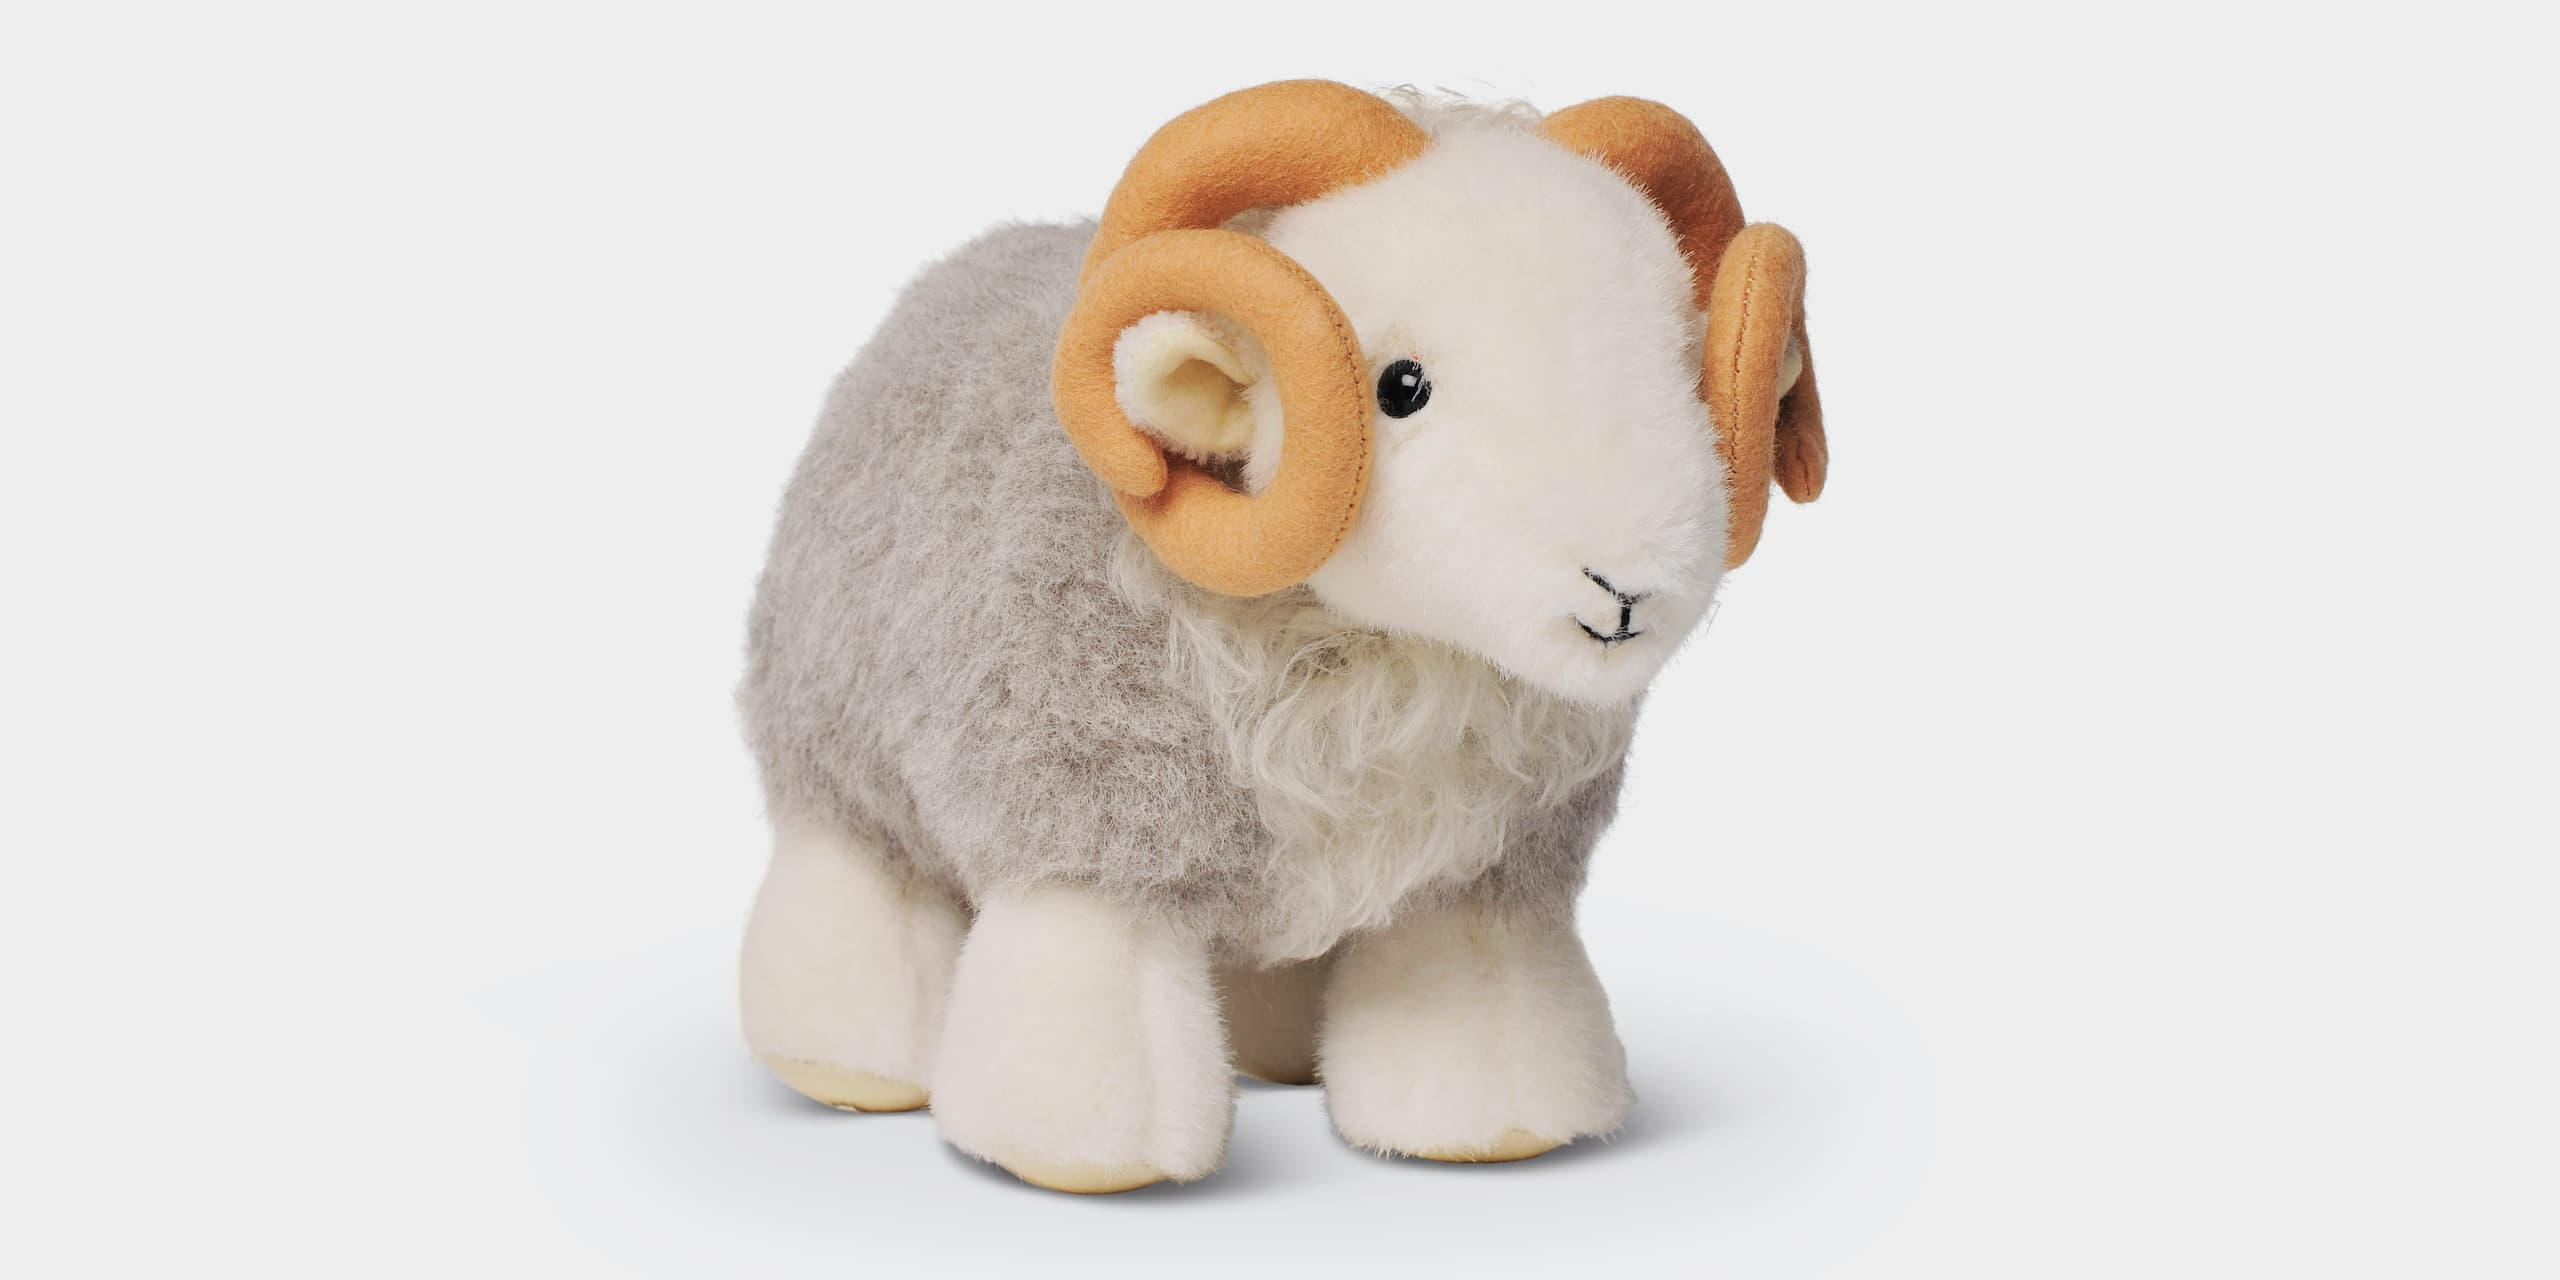 Introducing My Herdy Tup